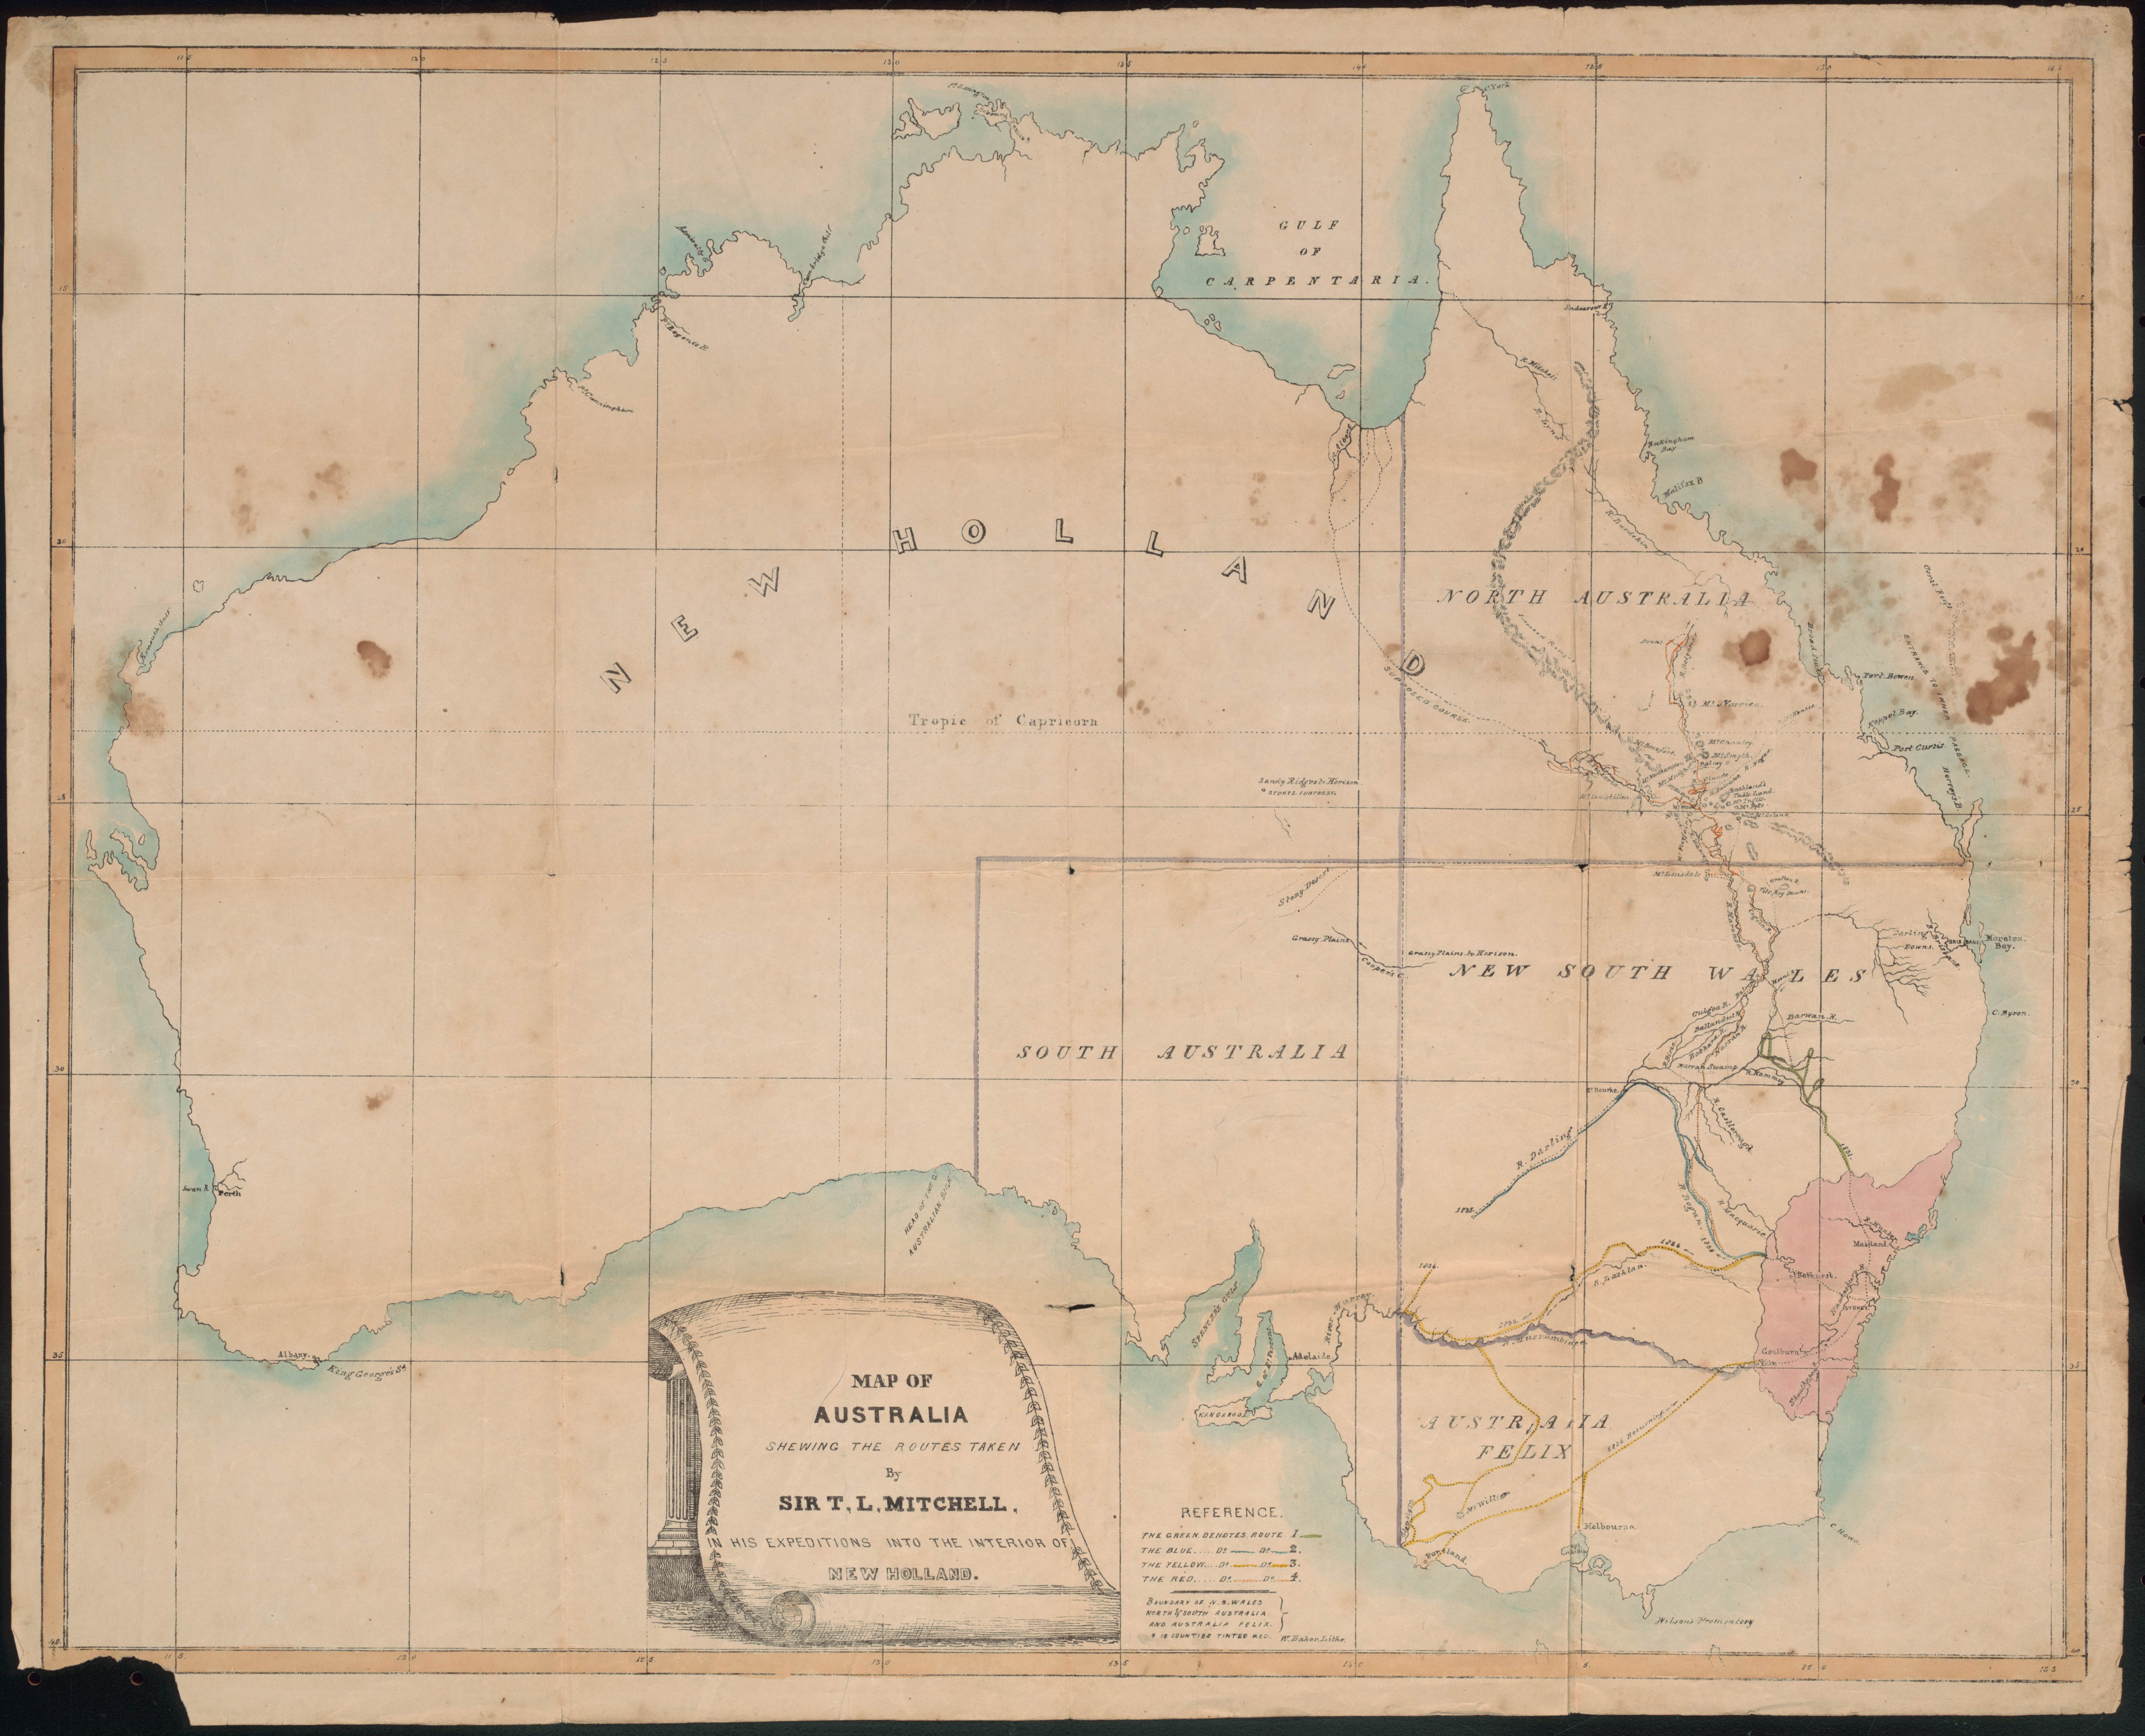 William Baker, Map of Australia showing the routes taken by Sir T.L. Mitchel